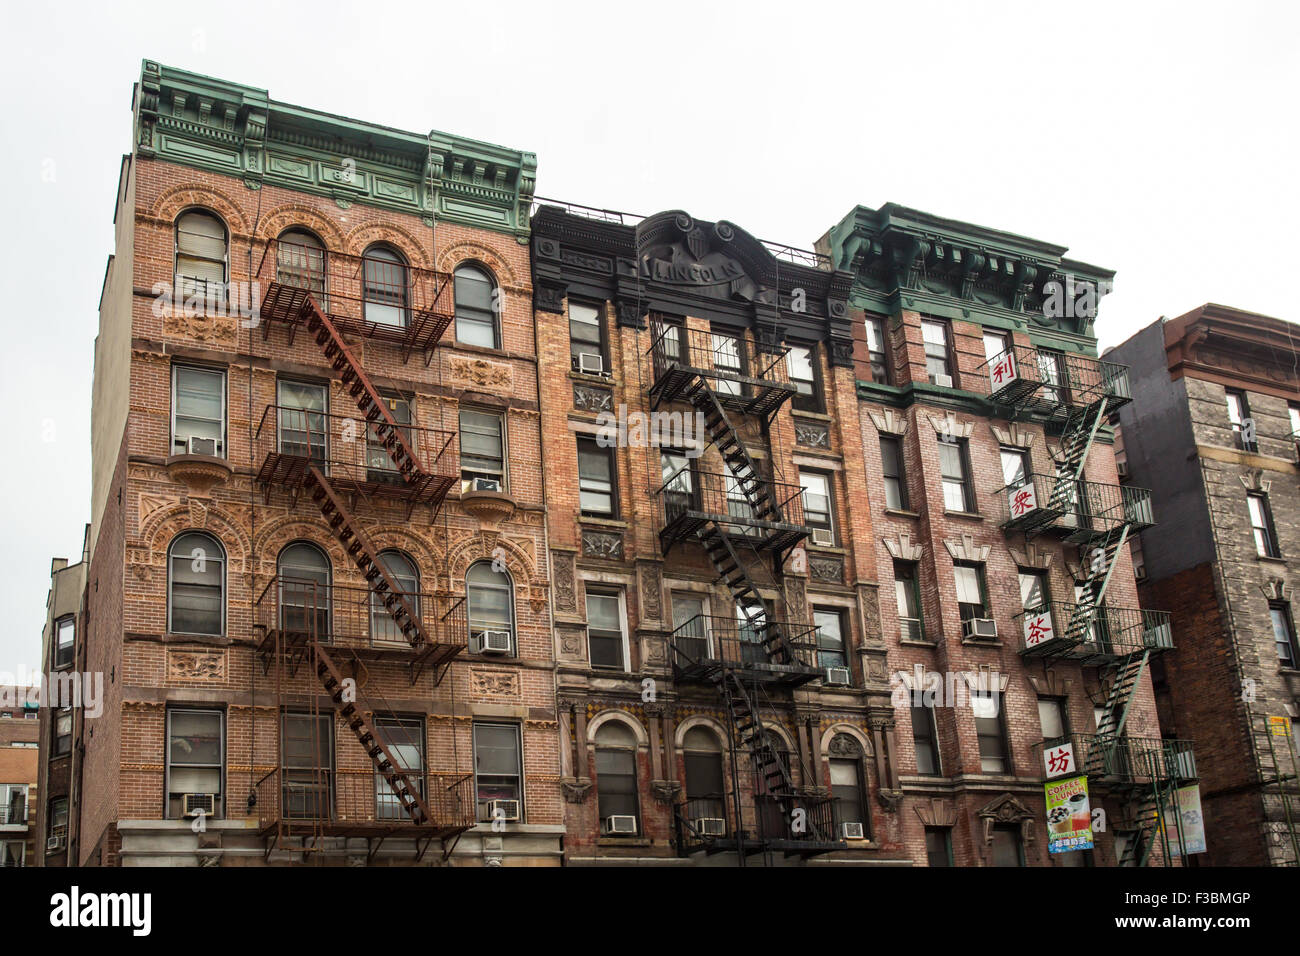 Merveilleux Typical New York City Apartment Building With Fire Escapes On The Lower  East Side Of Manhattan